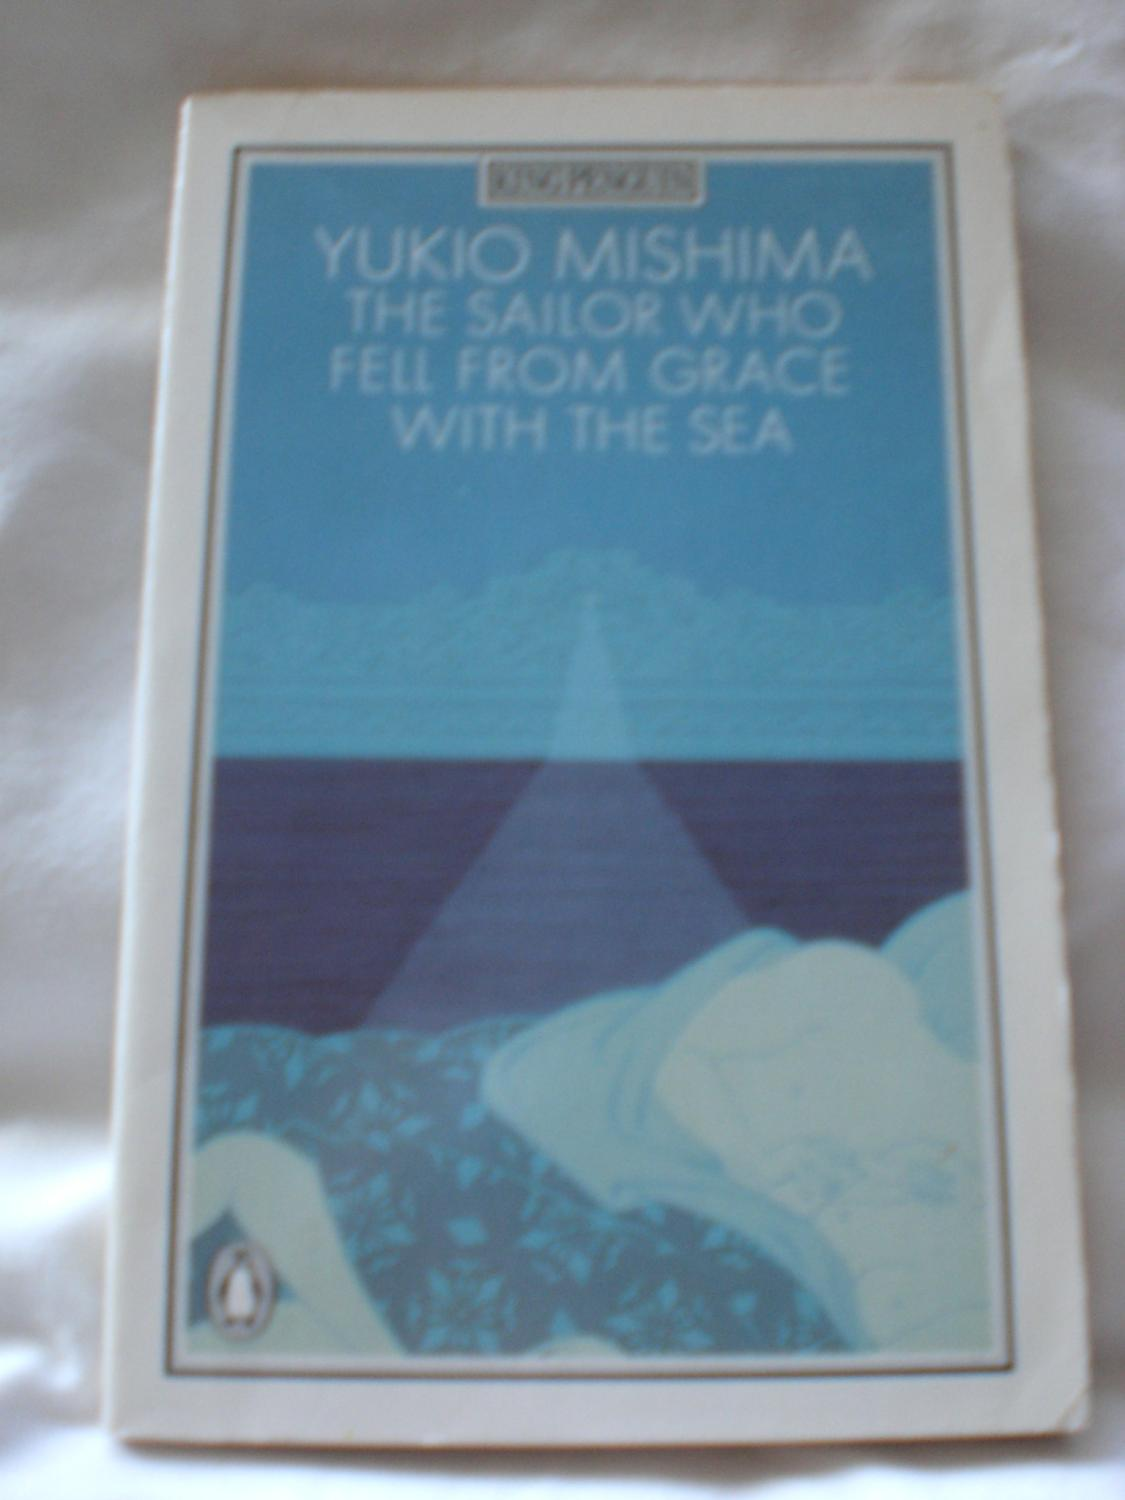 yukio mishimas novel the sailor who fell from grace with the sea essay Yukio mishima's the sailor who fell from grace with the sea - existentialist perspectives on death cultures throughout the world have different convictions surrounding the last, inevitable conclusion for all people - passing.